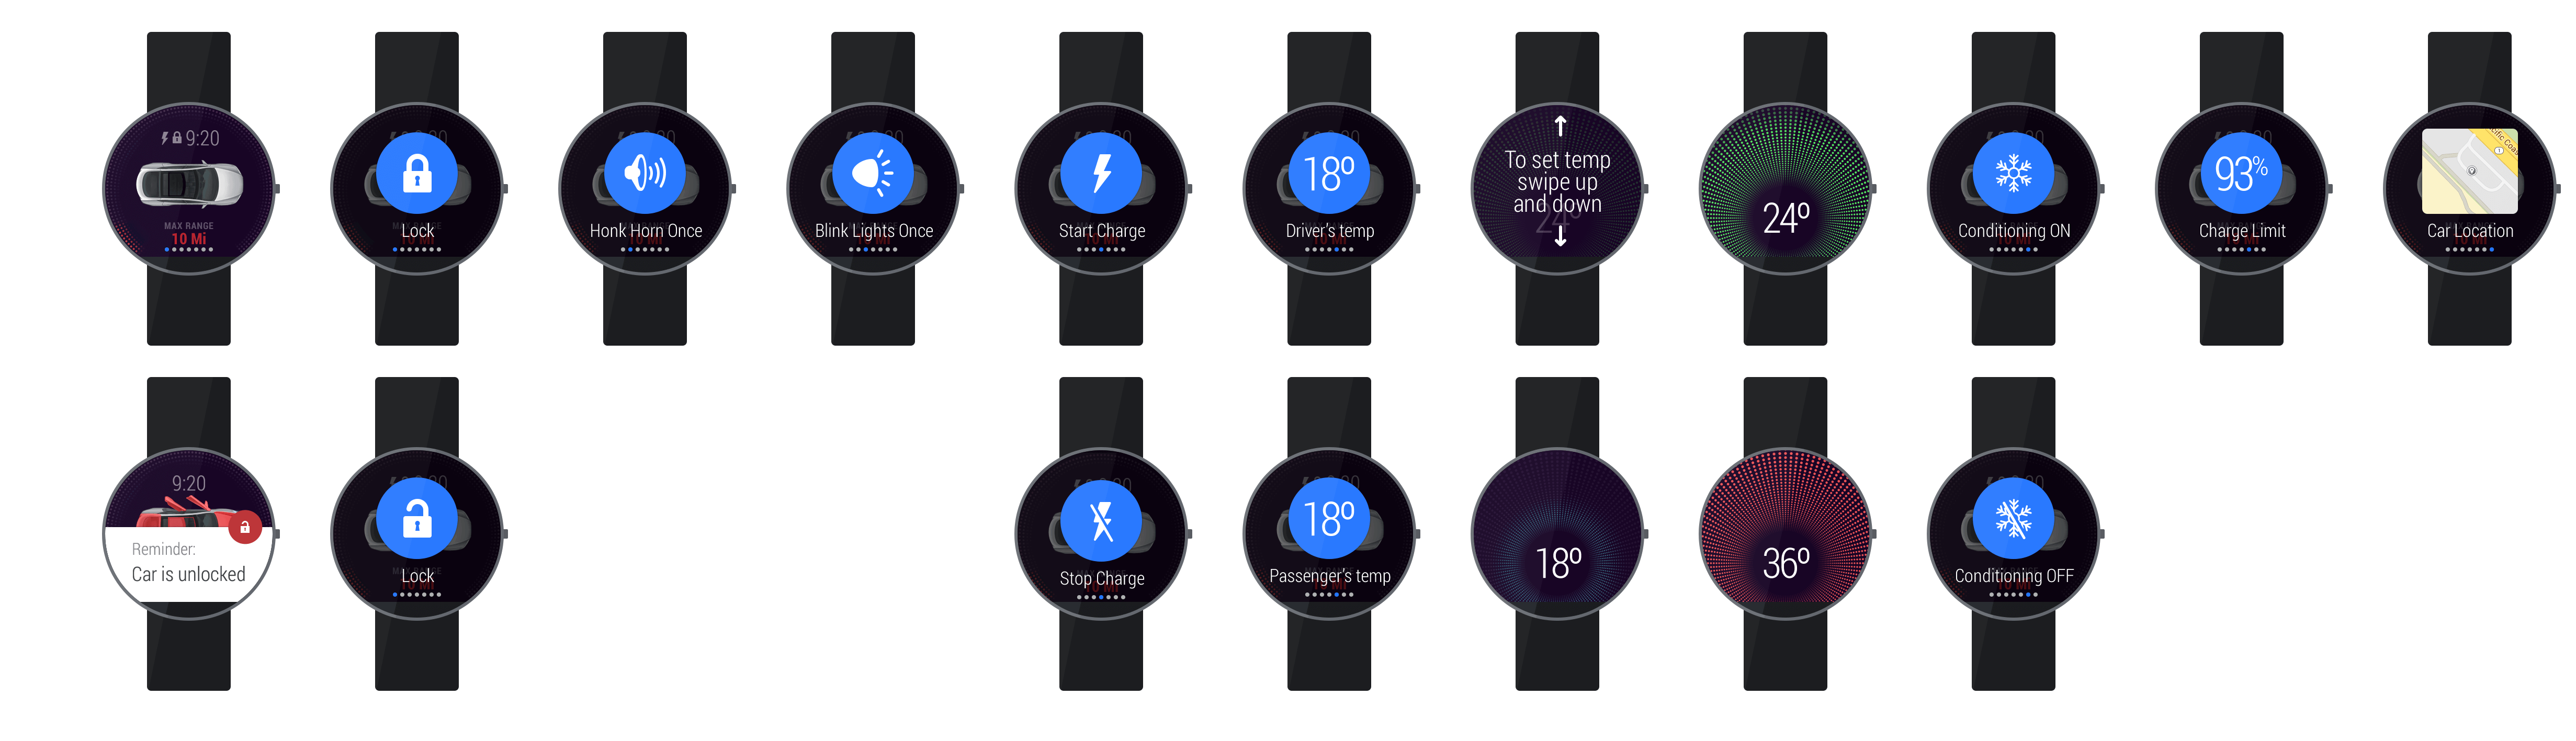 Apple_Watch_Android_Wear_Tesla_ELEKSlabs_5